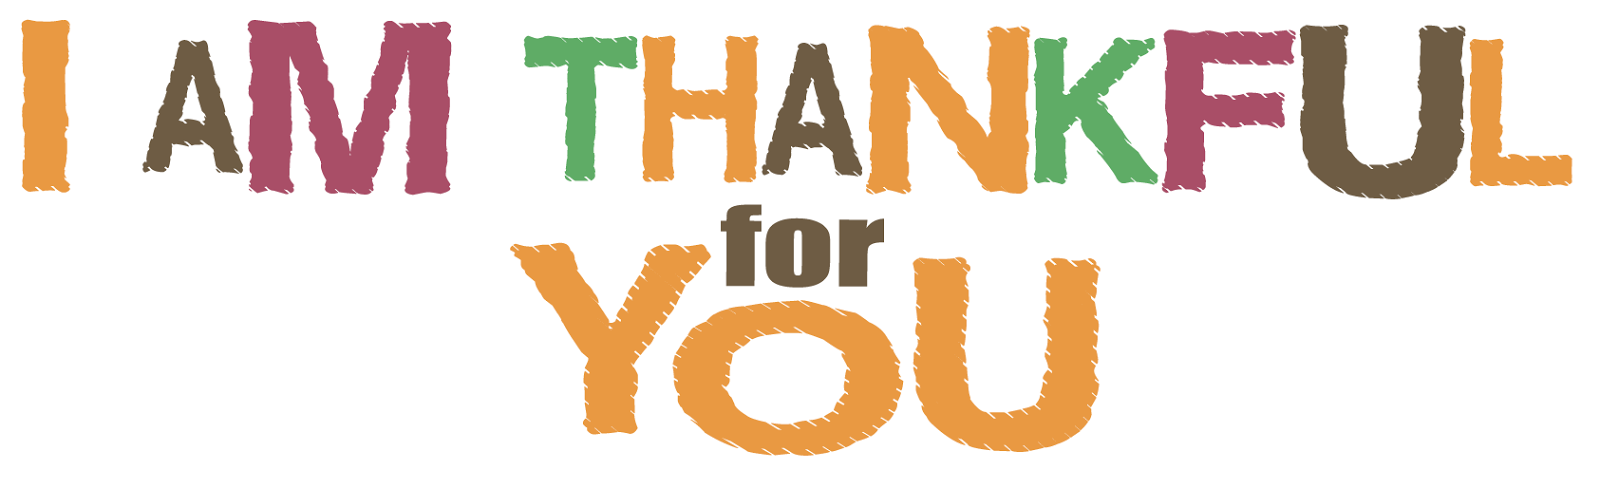 Clipart Of People Being Thankful.